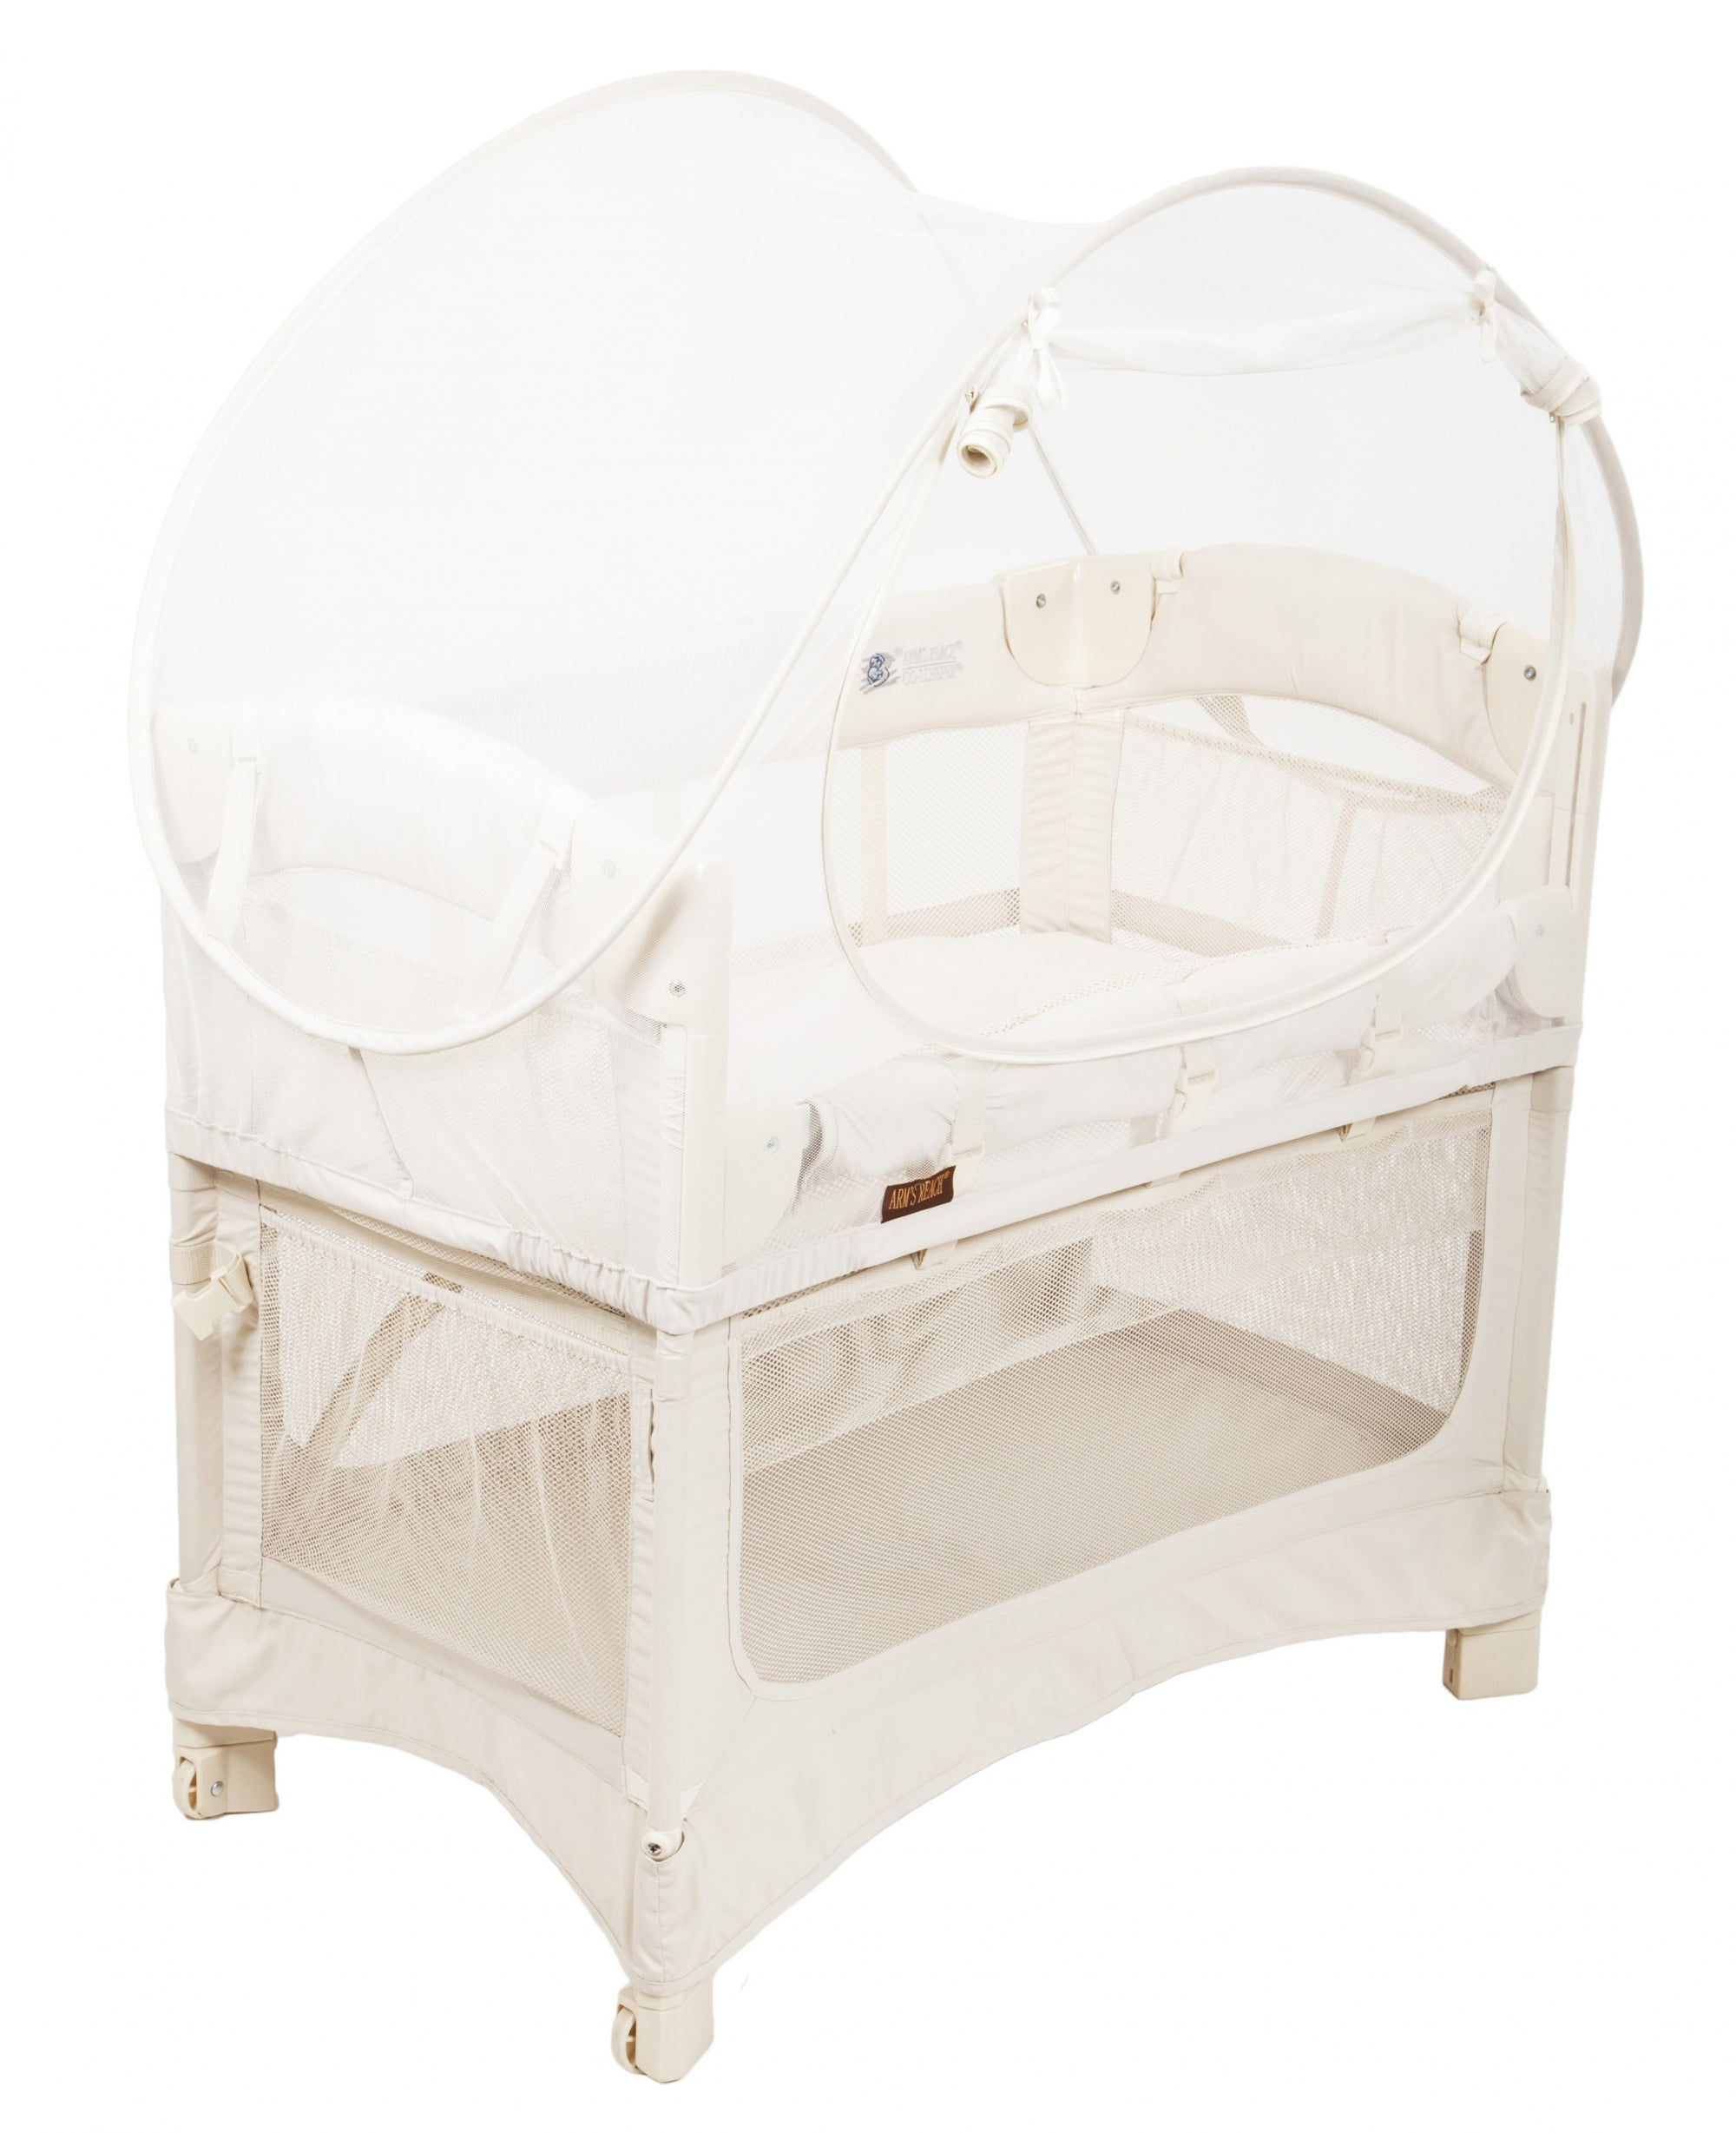 CANOPY FOR E-Z MINI, CLEAR-VUE, CAMBRIA & VERSATILE